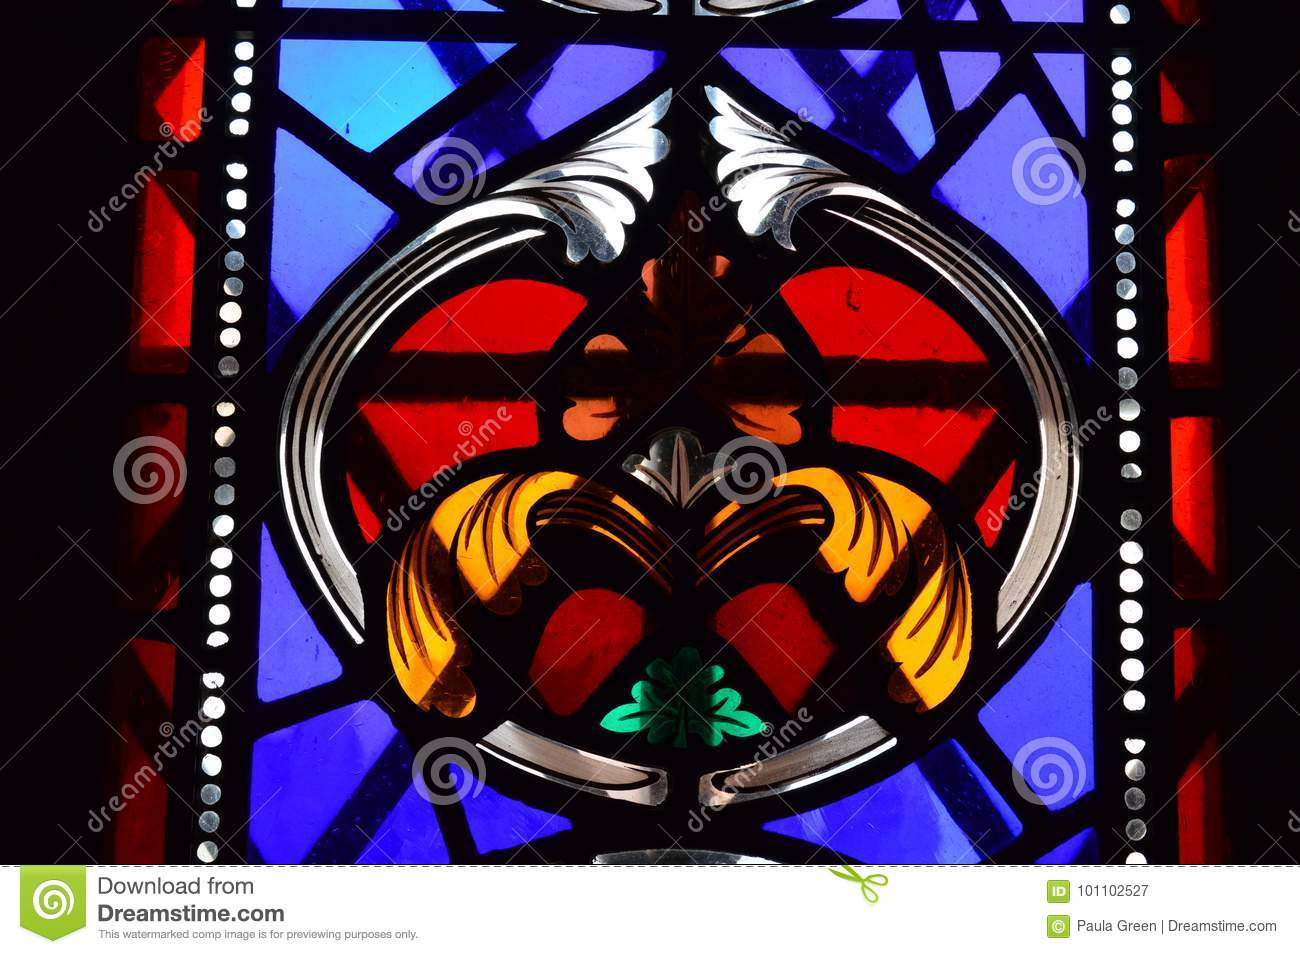 Inside the Great Tower - Stained glass window